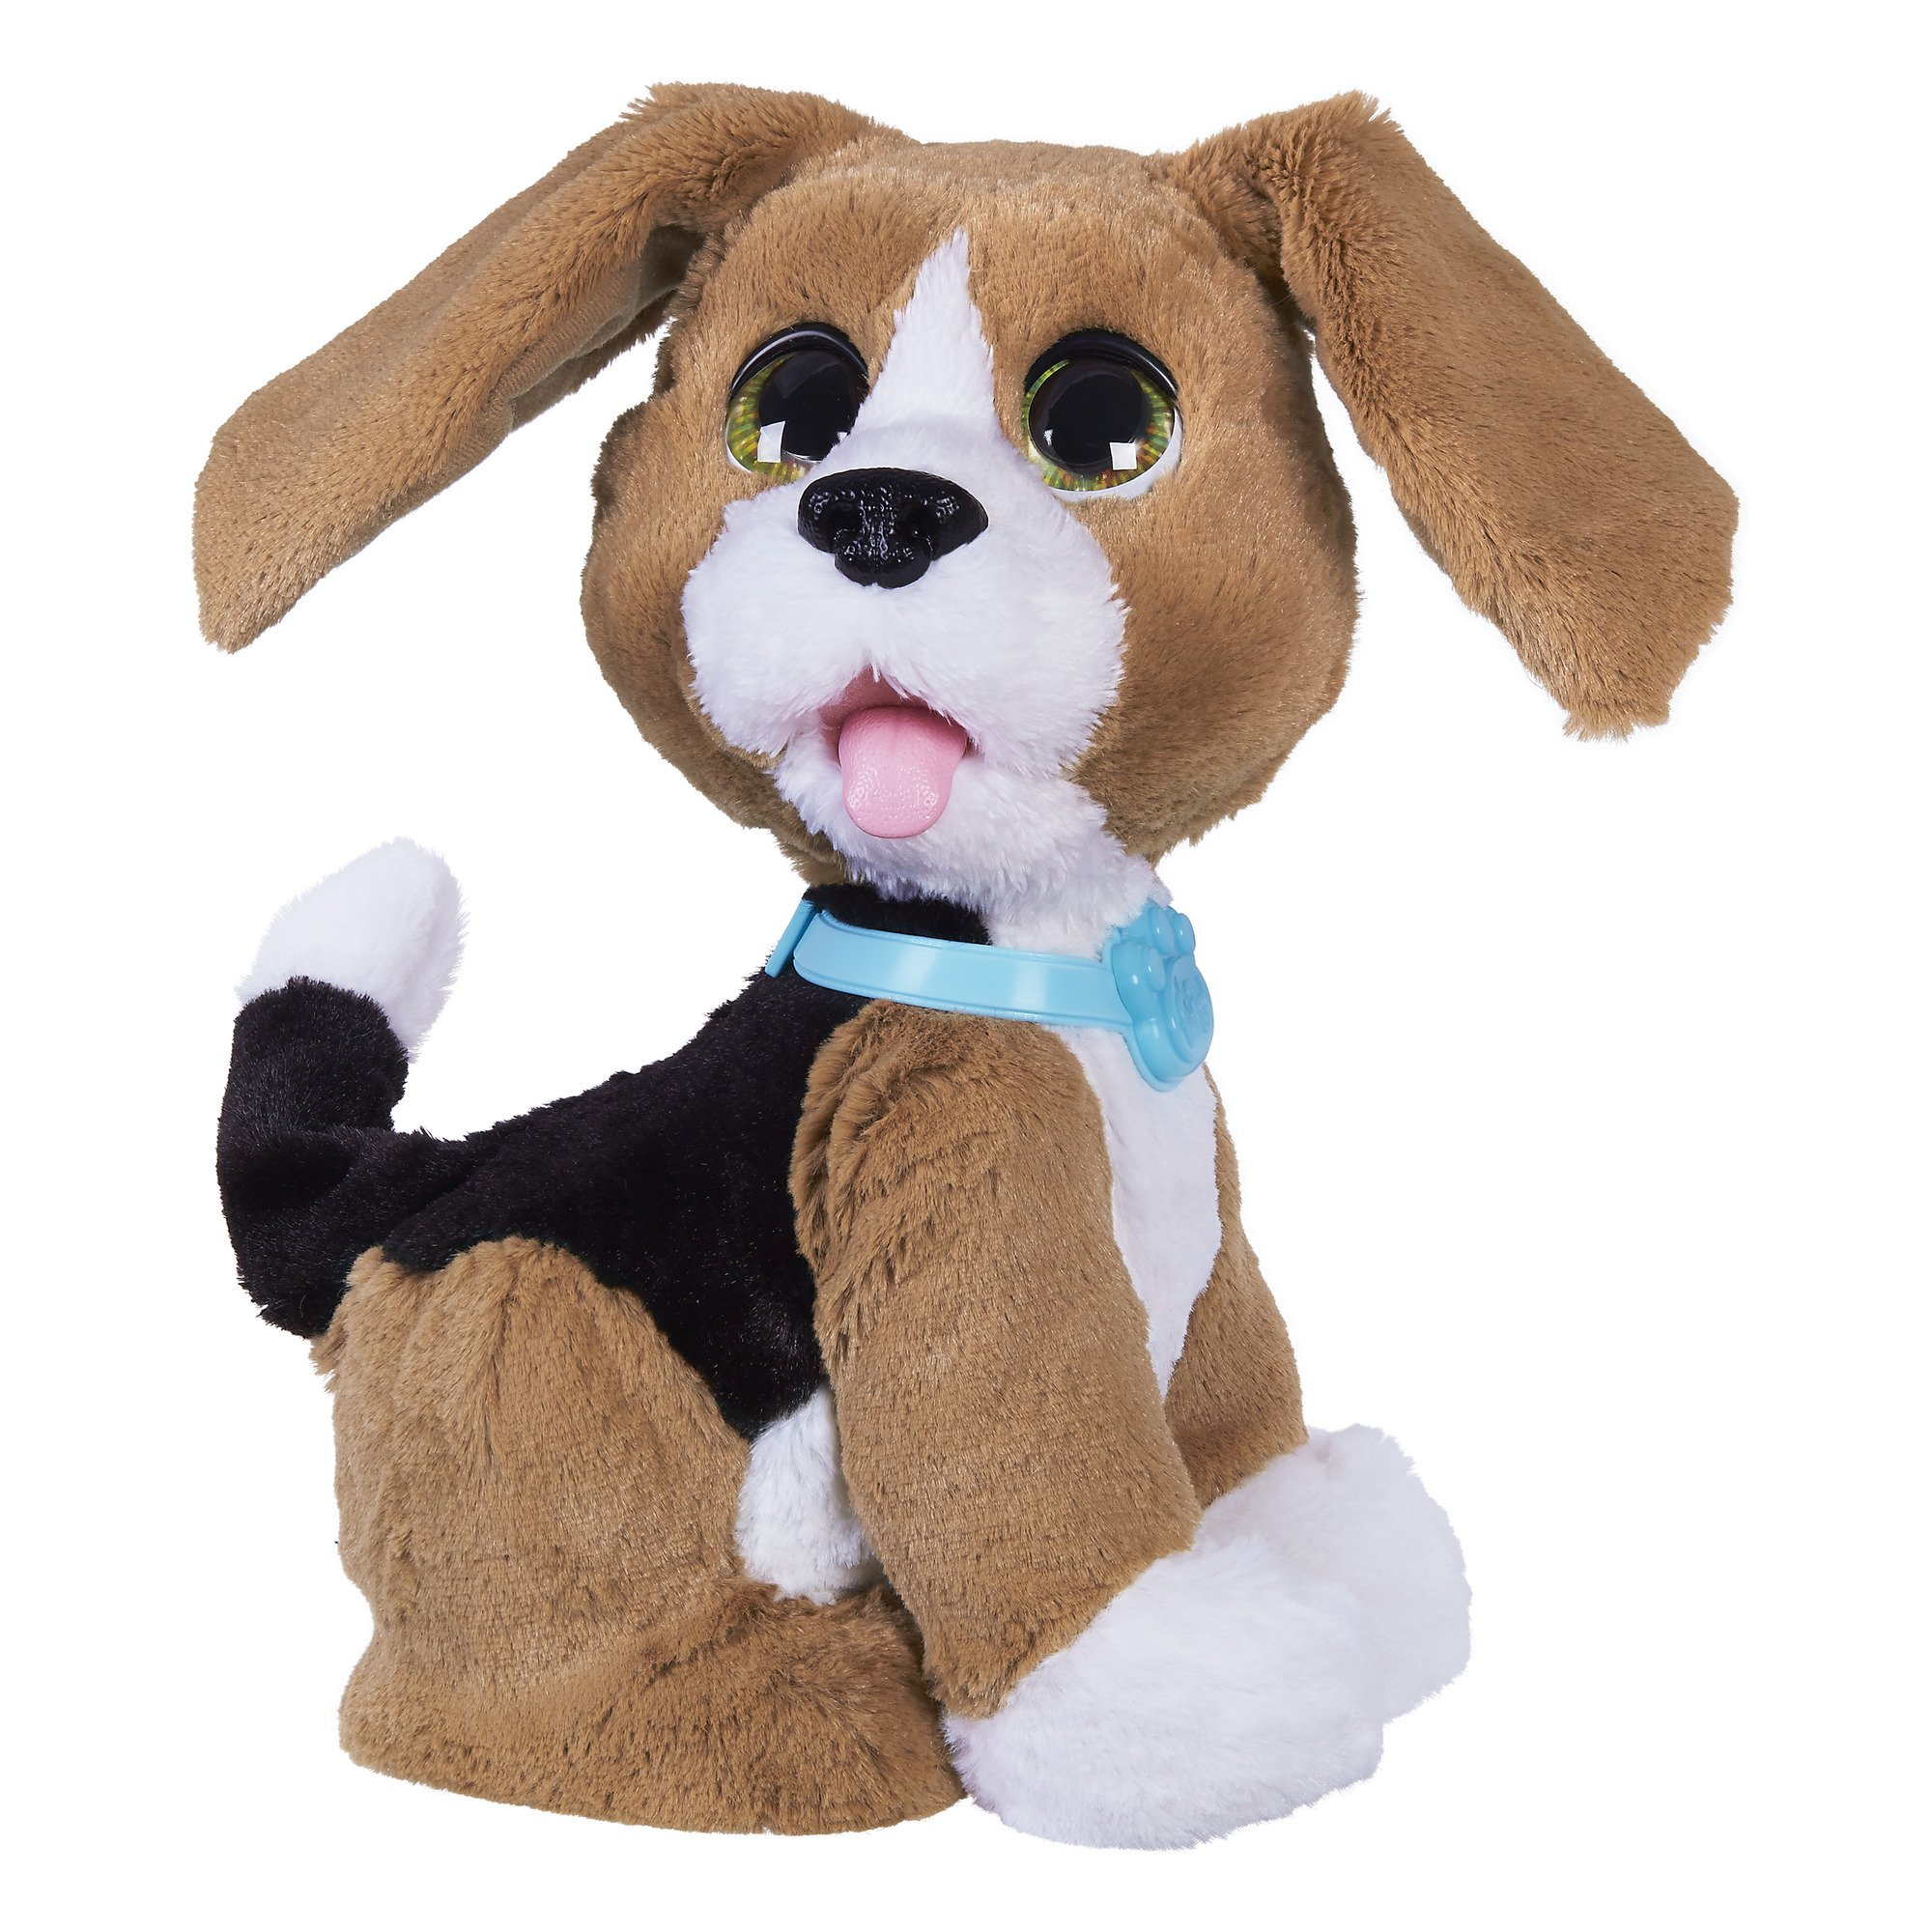 Fur Real Friends Peluche, B9070, product image